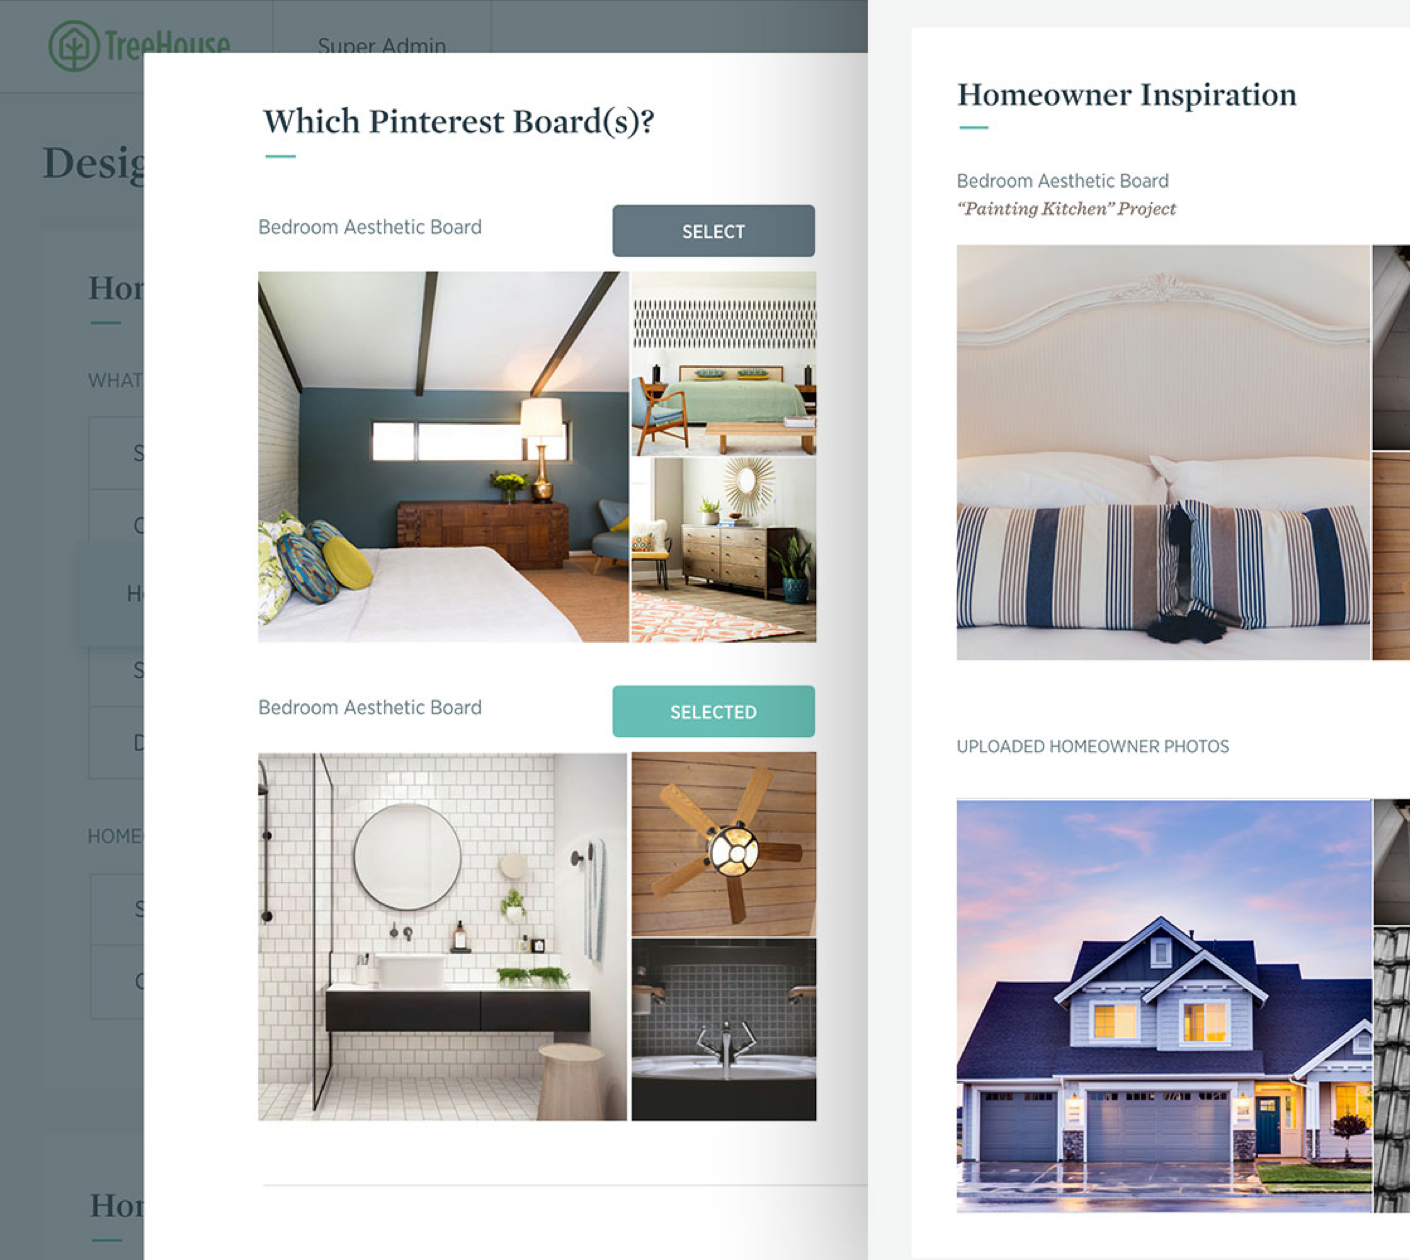 image of two overlapping Treehouse interface screens including a pinterest board upload component and a photo grid of uploaded homeowner photos